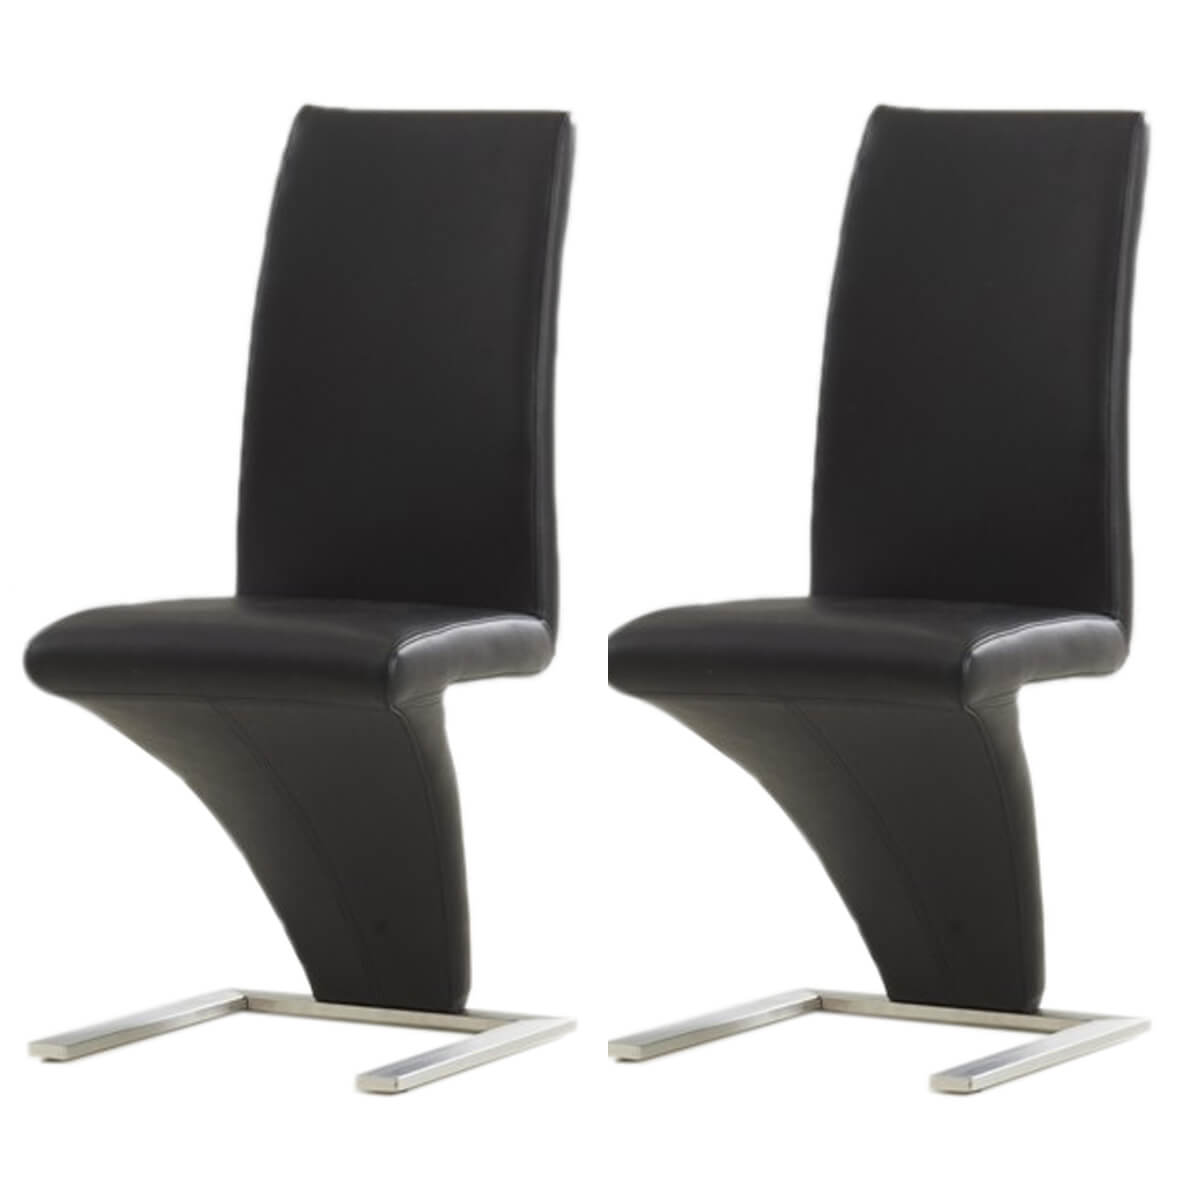 Black Z Shaped Dining Chairs Faux Leather | Dining Chairs | FADS